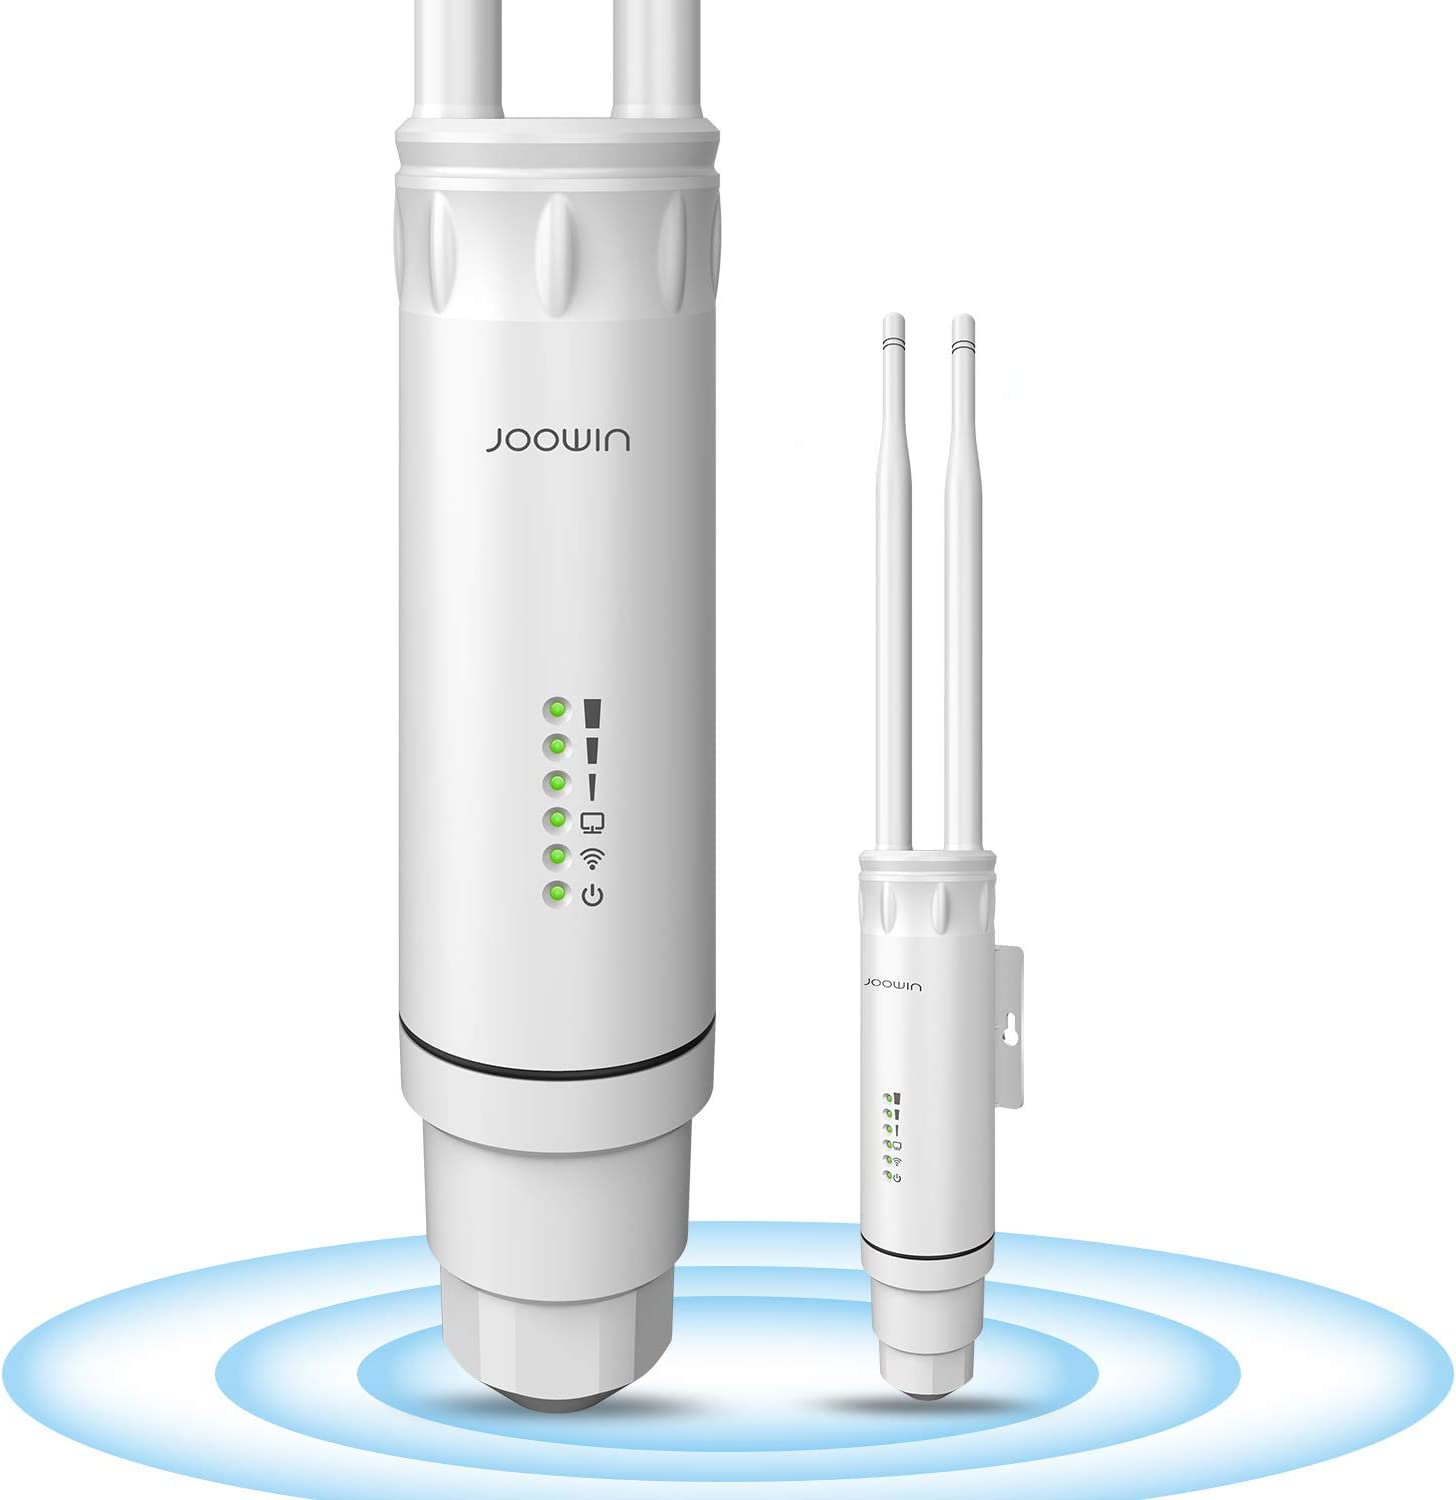 JOOWIN AC1200 Outdoor Wireless Access Point High Power with PoE, Weatherproof Outdoor WiFi Extender Wireless WiFi Access Points/Router/Repeater/Bridge Dual Band 2.4G 300Mbps or 5G 867Mbps 802.11AC